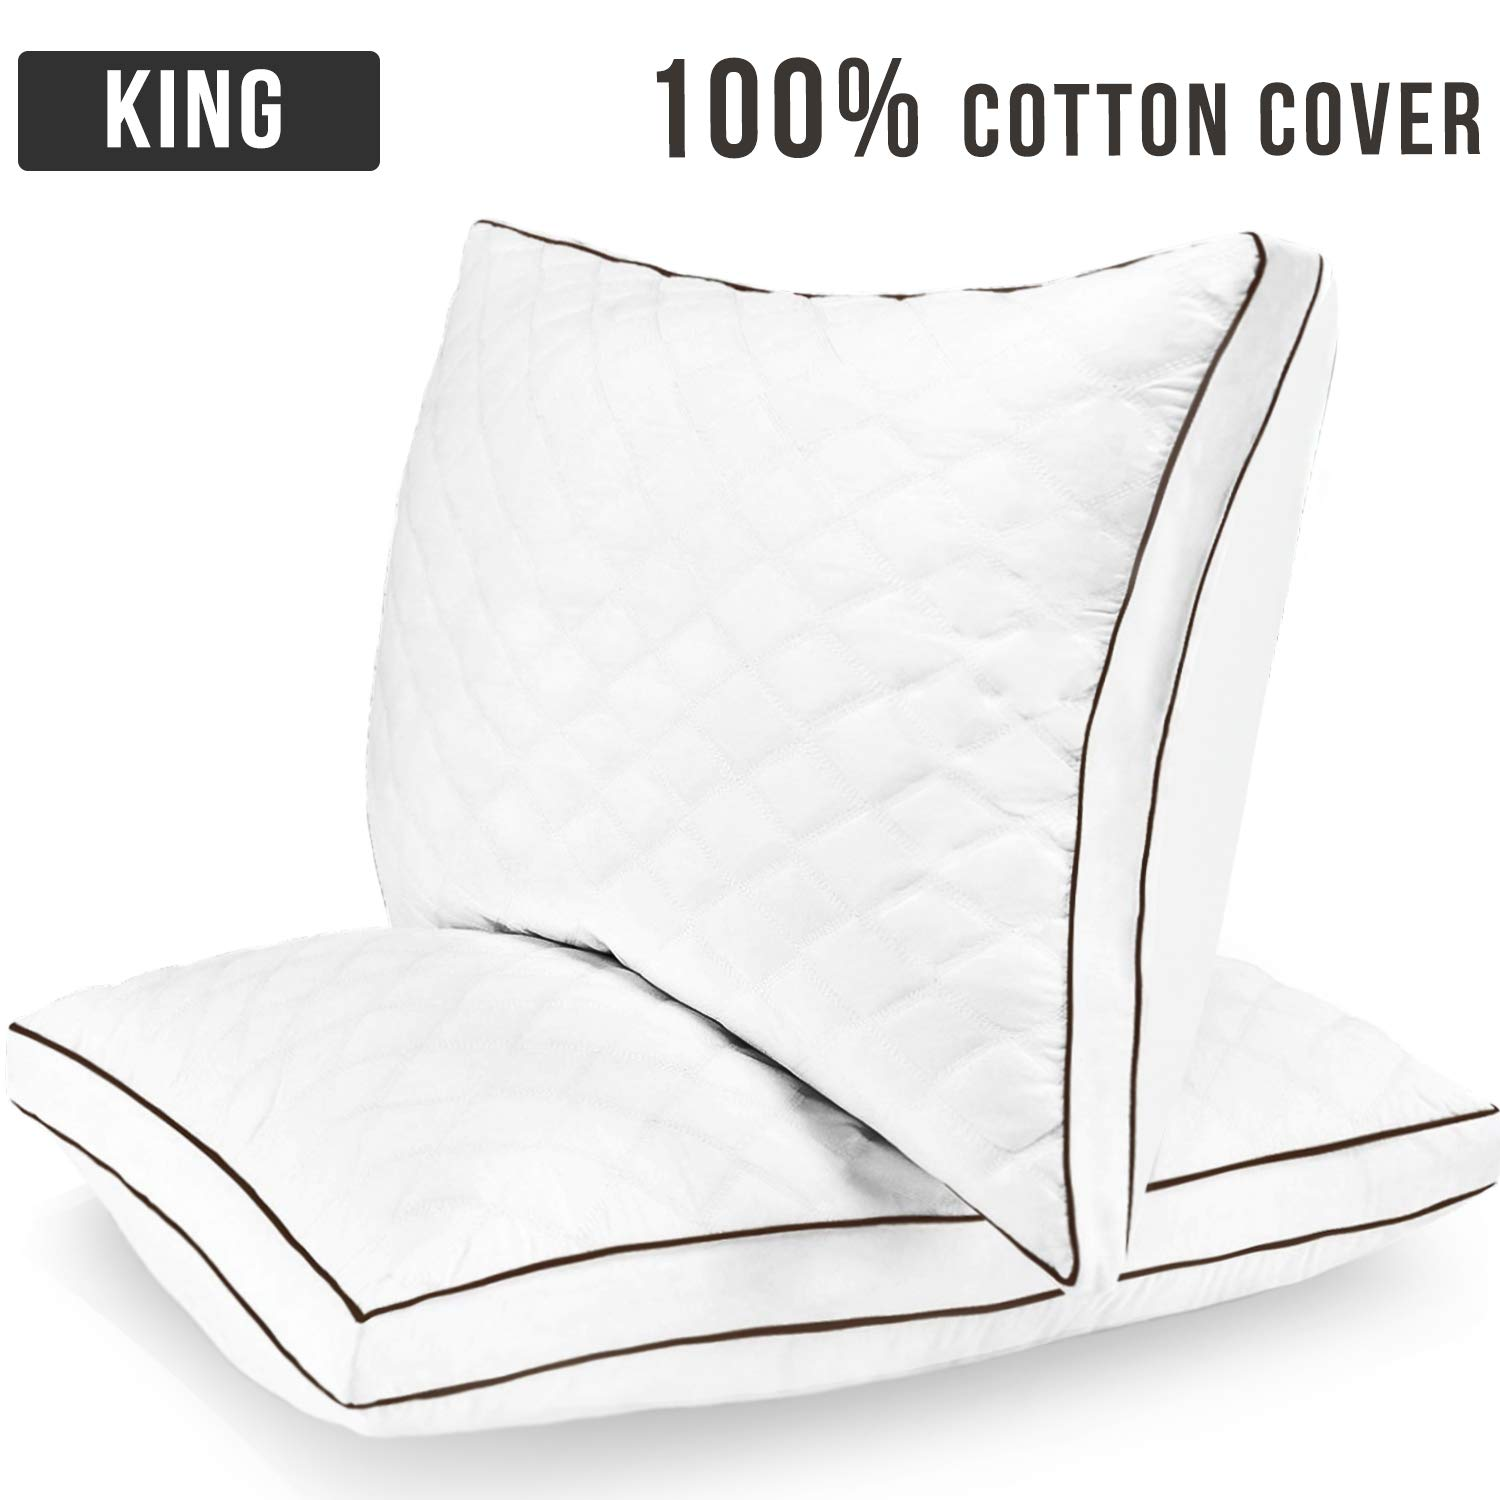 Casaottima King Size Bed Pillows Sleeping 20''x36'' Set of 2 【100% Cotton Cover Shell】